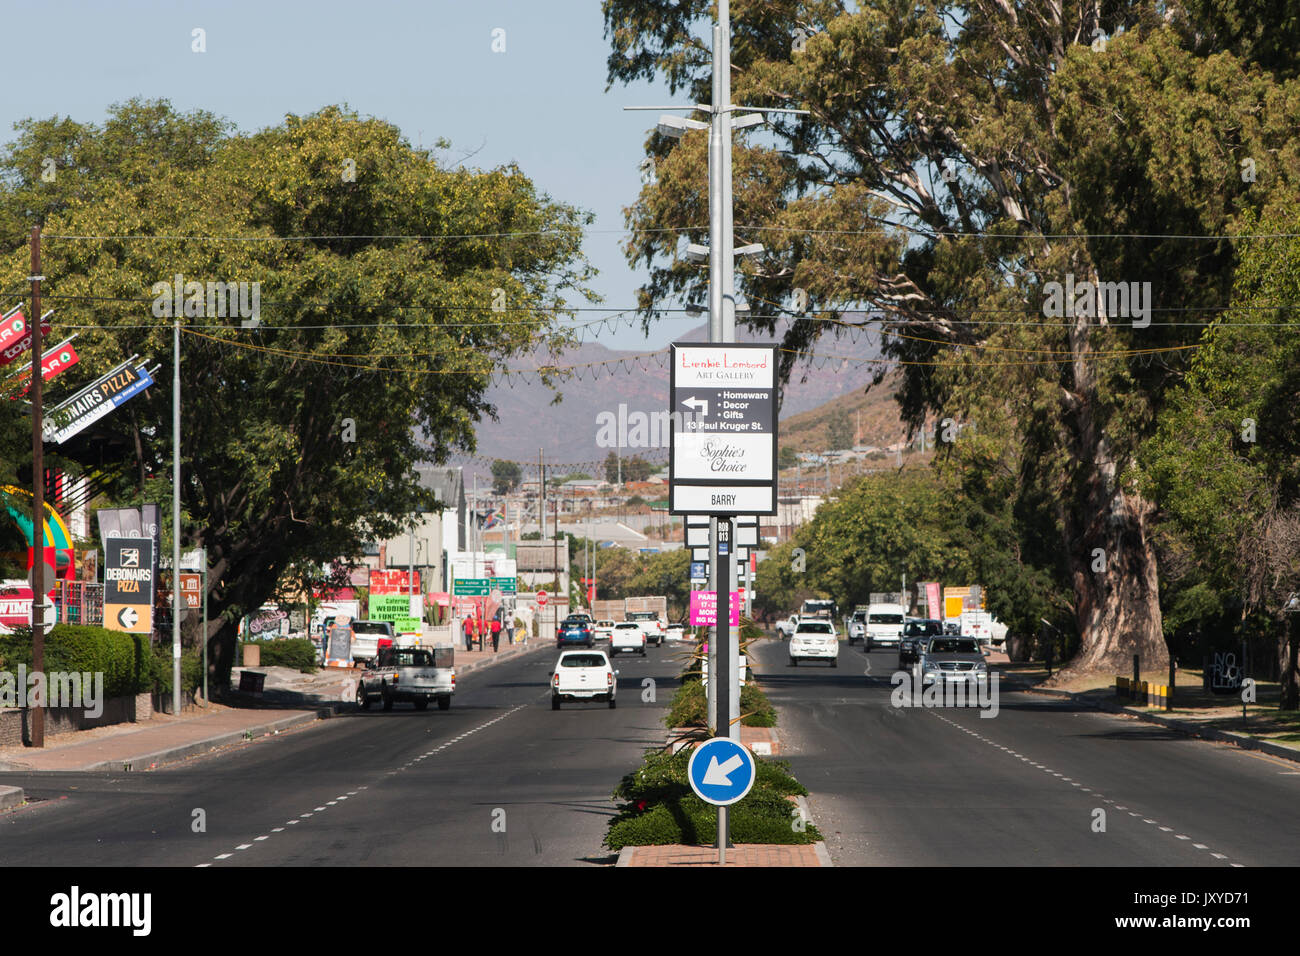 Robertson main road, Western Cape, South Africa. - Stock Image